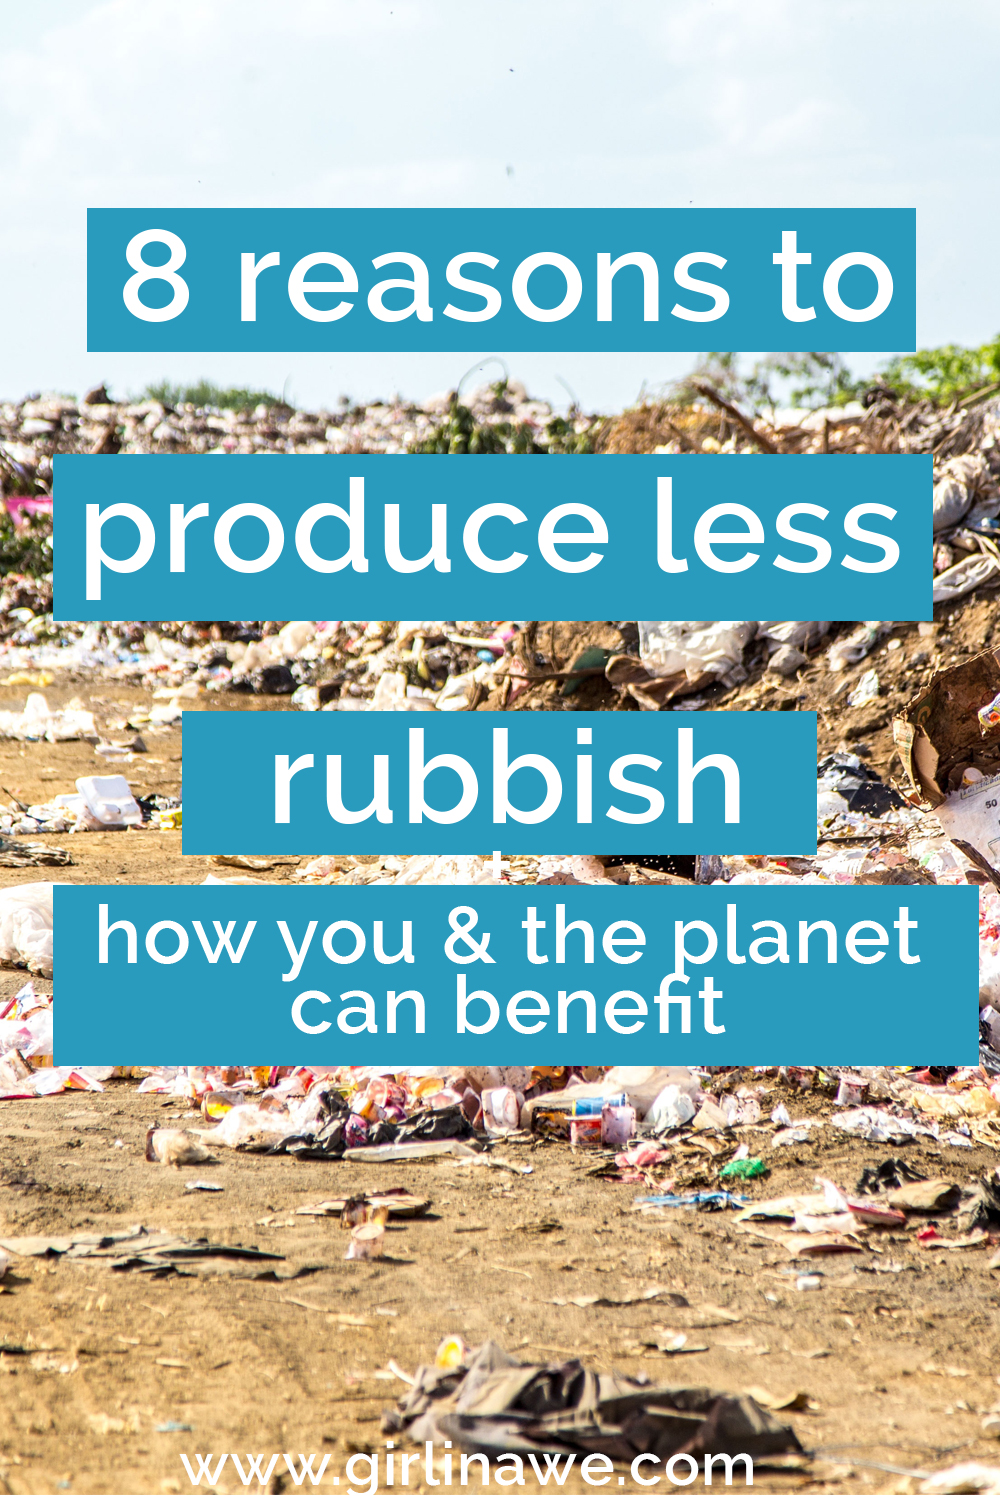 8 reasons why you should produce less rubbish and how you and the planet can benefit